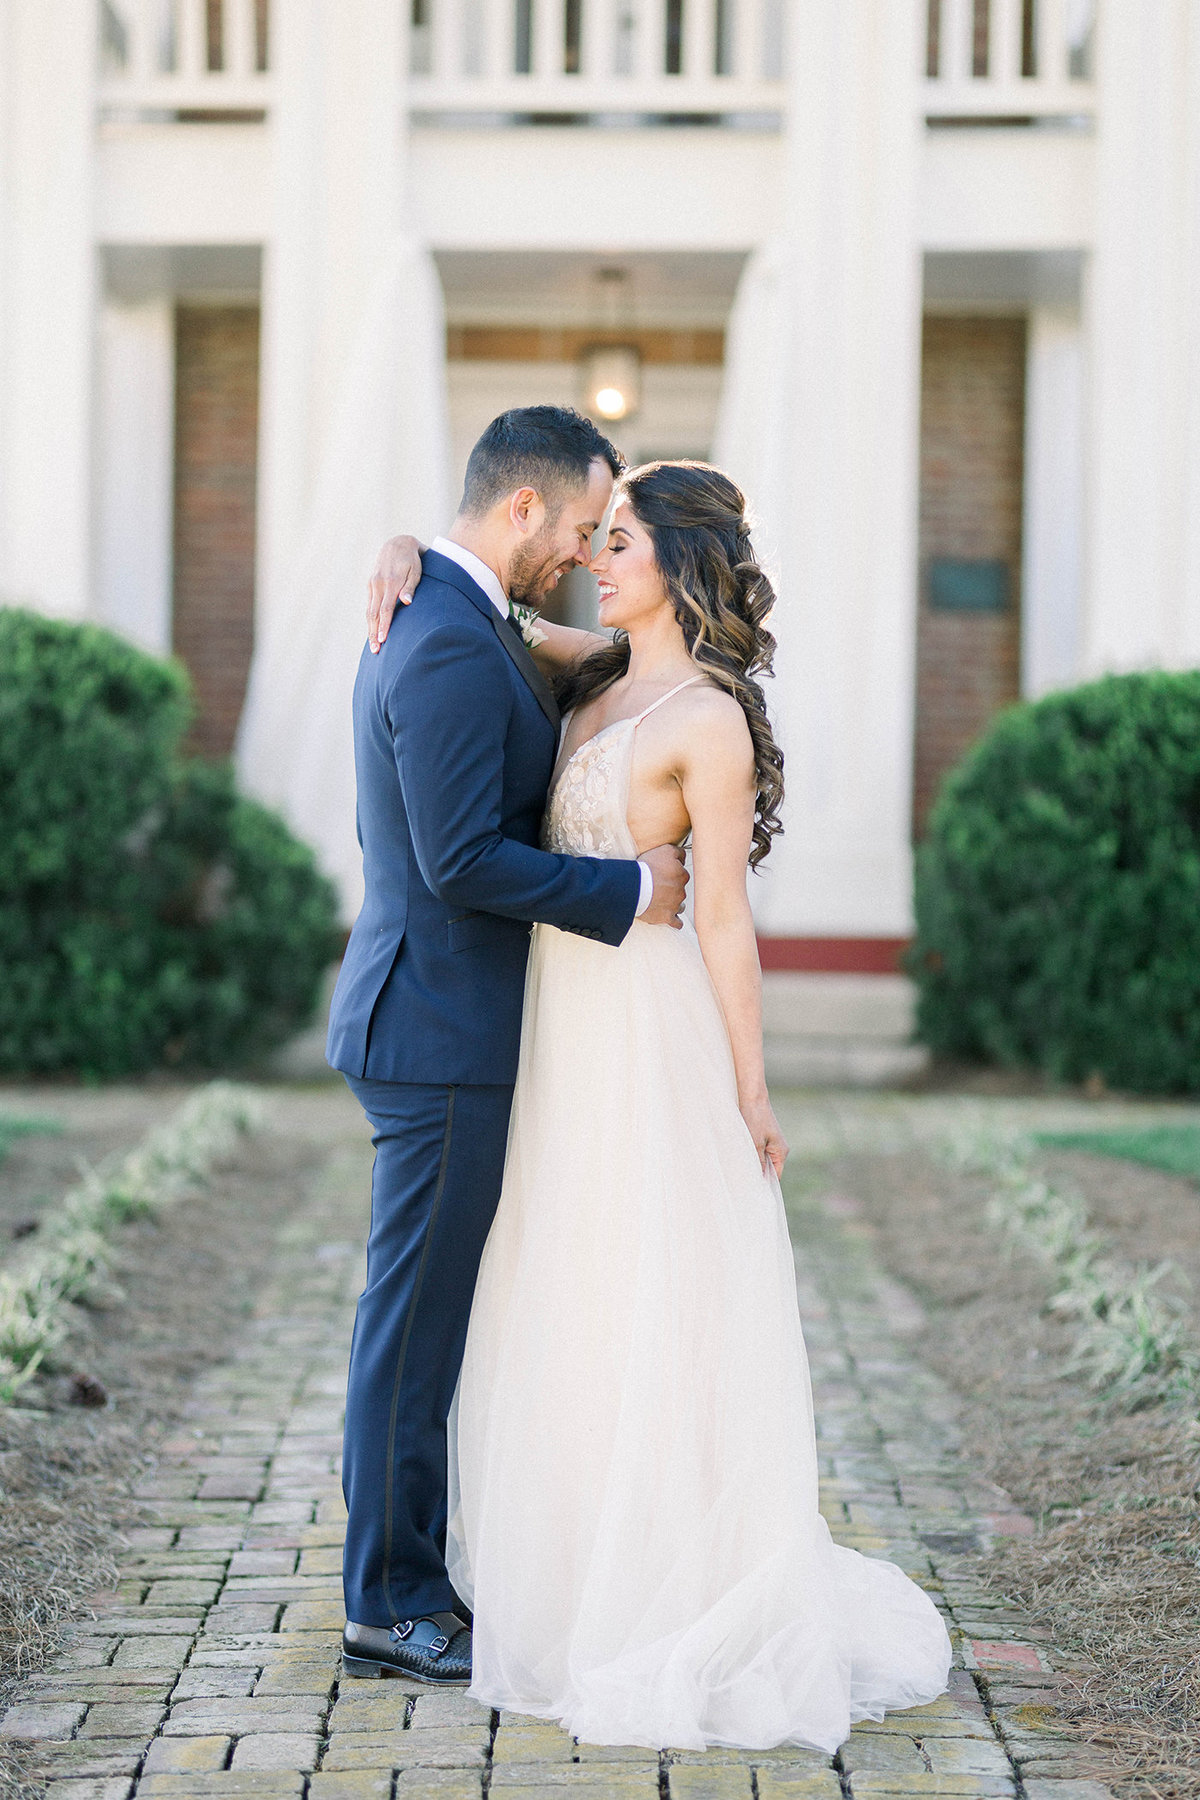 Cedarmont Nashville Editorial - Sarah Sunstrom Photography - Fine Art Wedding Photographer - 21